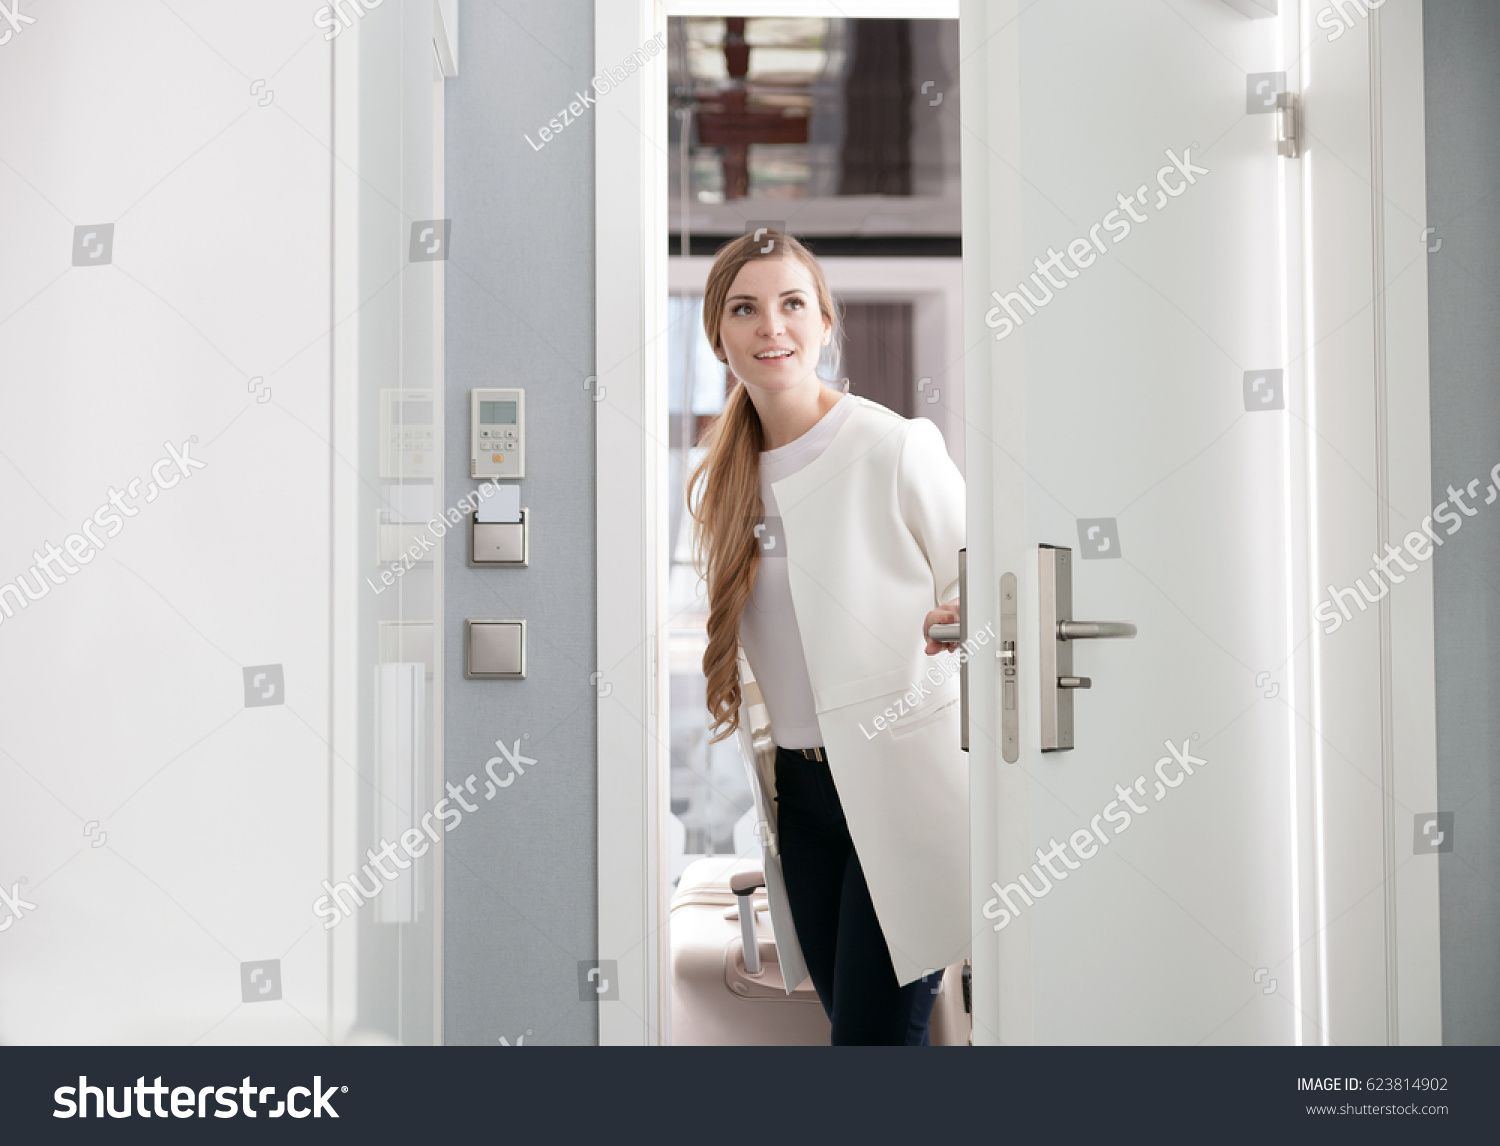 Young Delighted Woman With Suitcase Opening Door At Modern Hotel